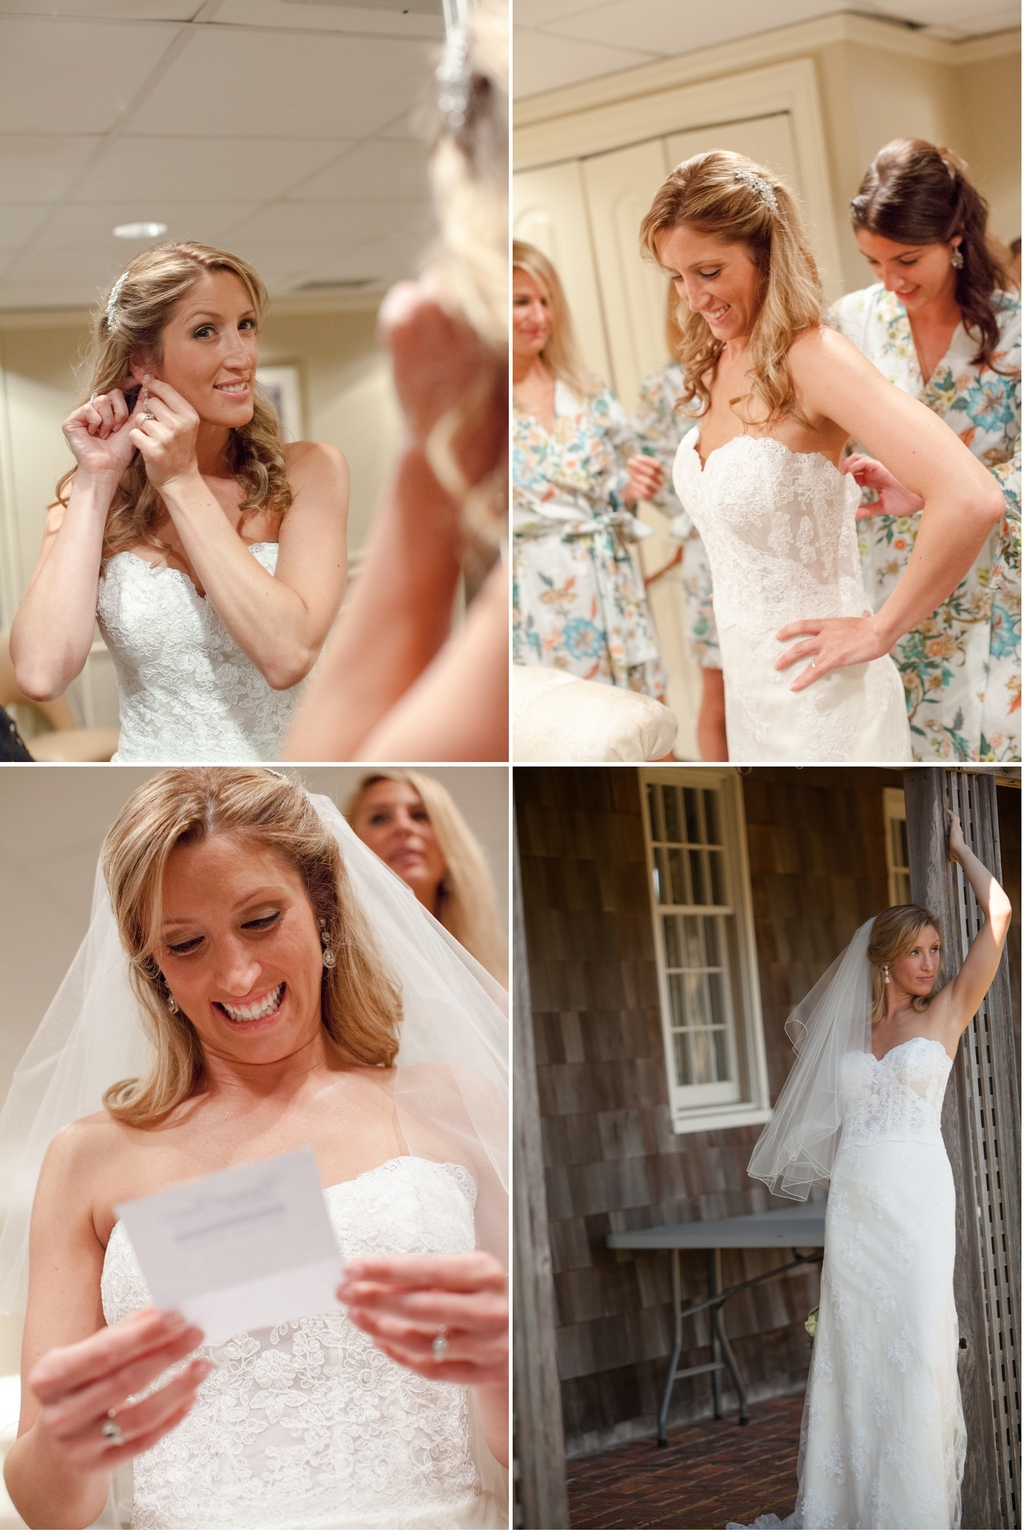 Real Wedding Long Island Throo Williams Photography by Verdi Bride Getting Ready